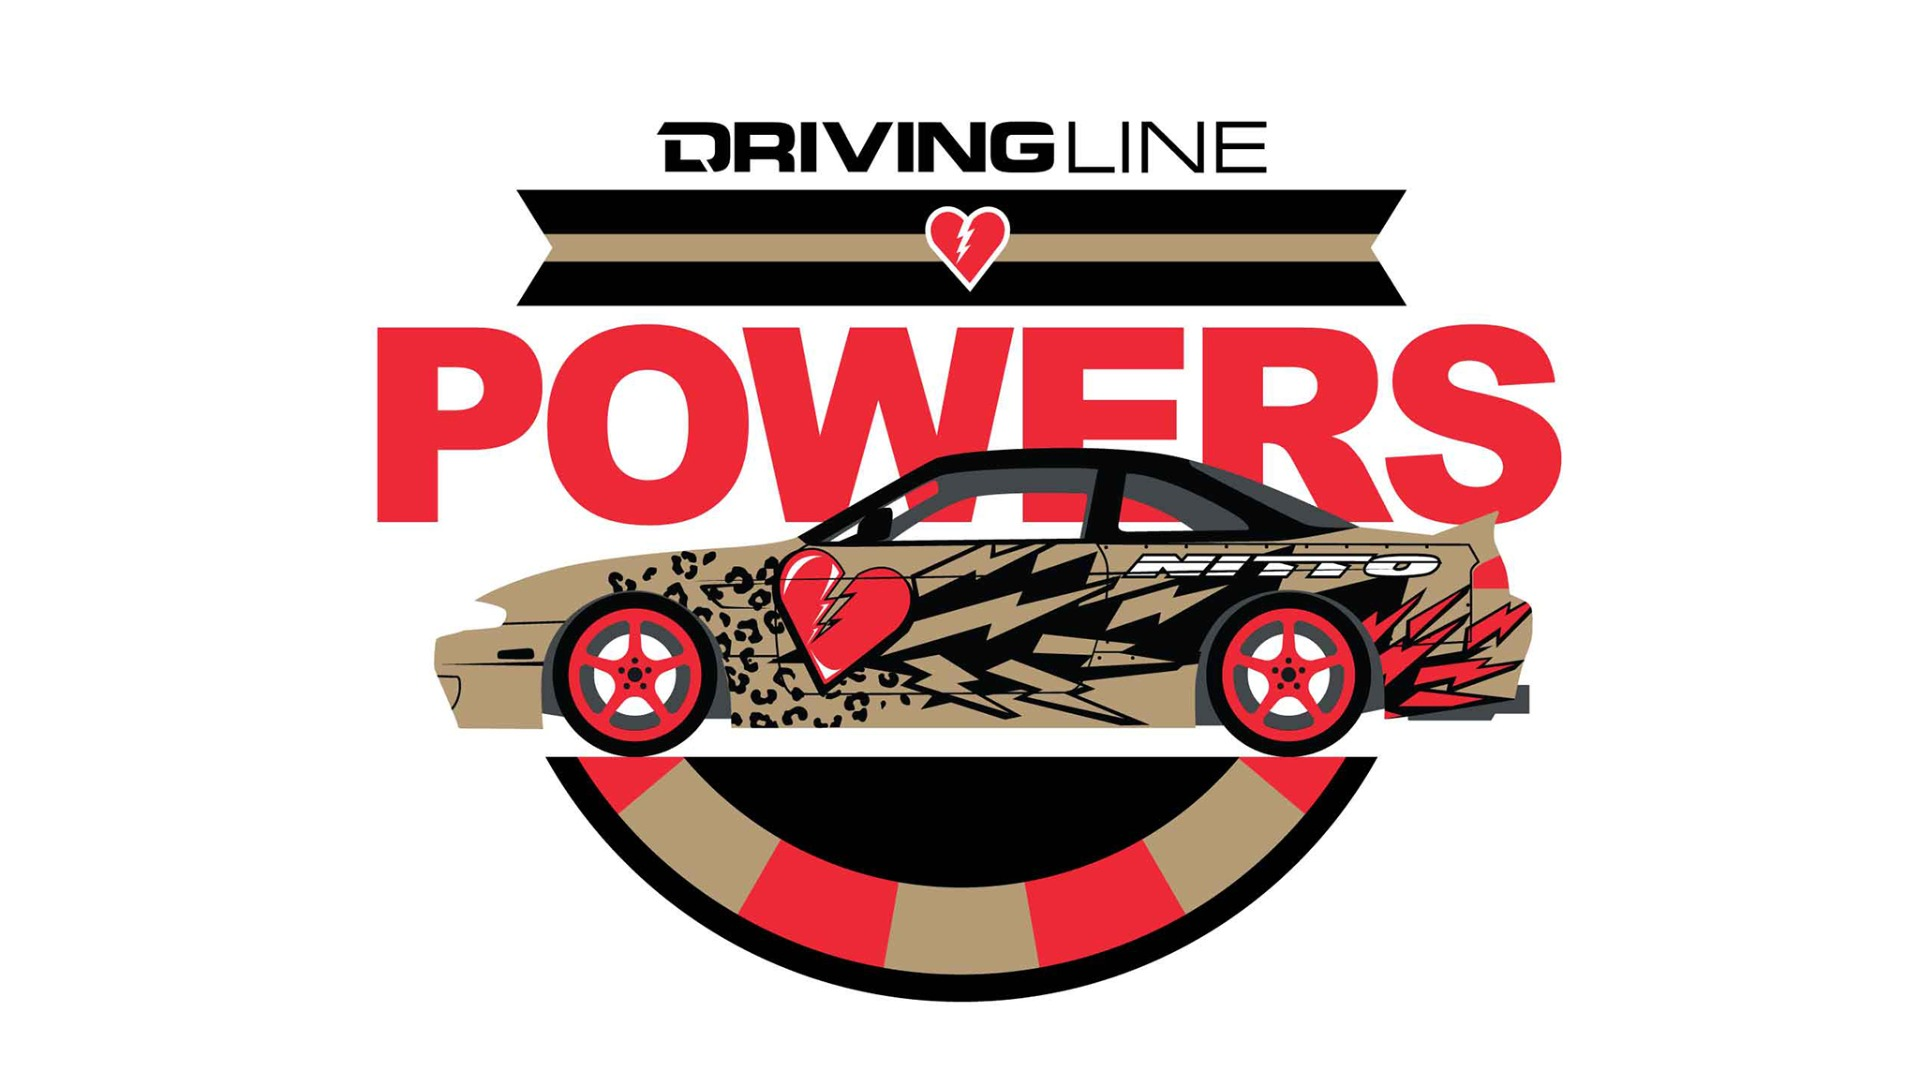 DESKTOP 2049x1152 pixel wallpaper - Matt Powers' drift 240sx Driving Line exclusive design. To download, click magnifying glass in lower-right corner, than download full-size image.